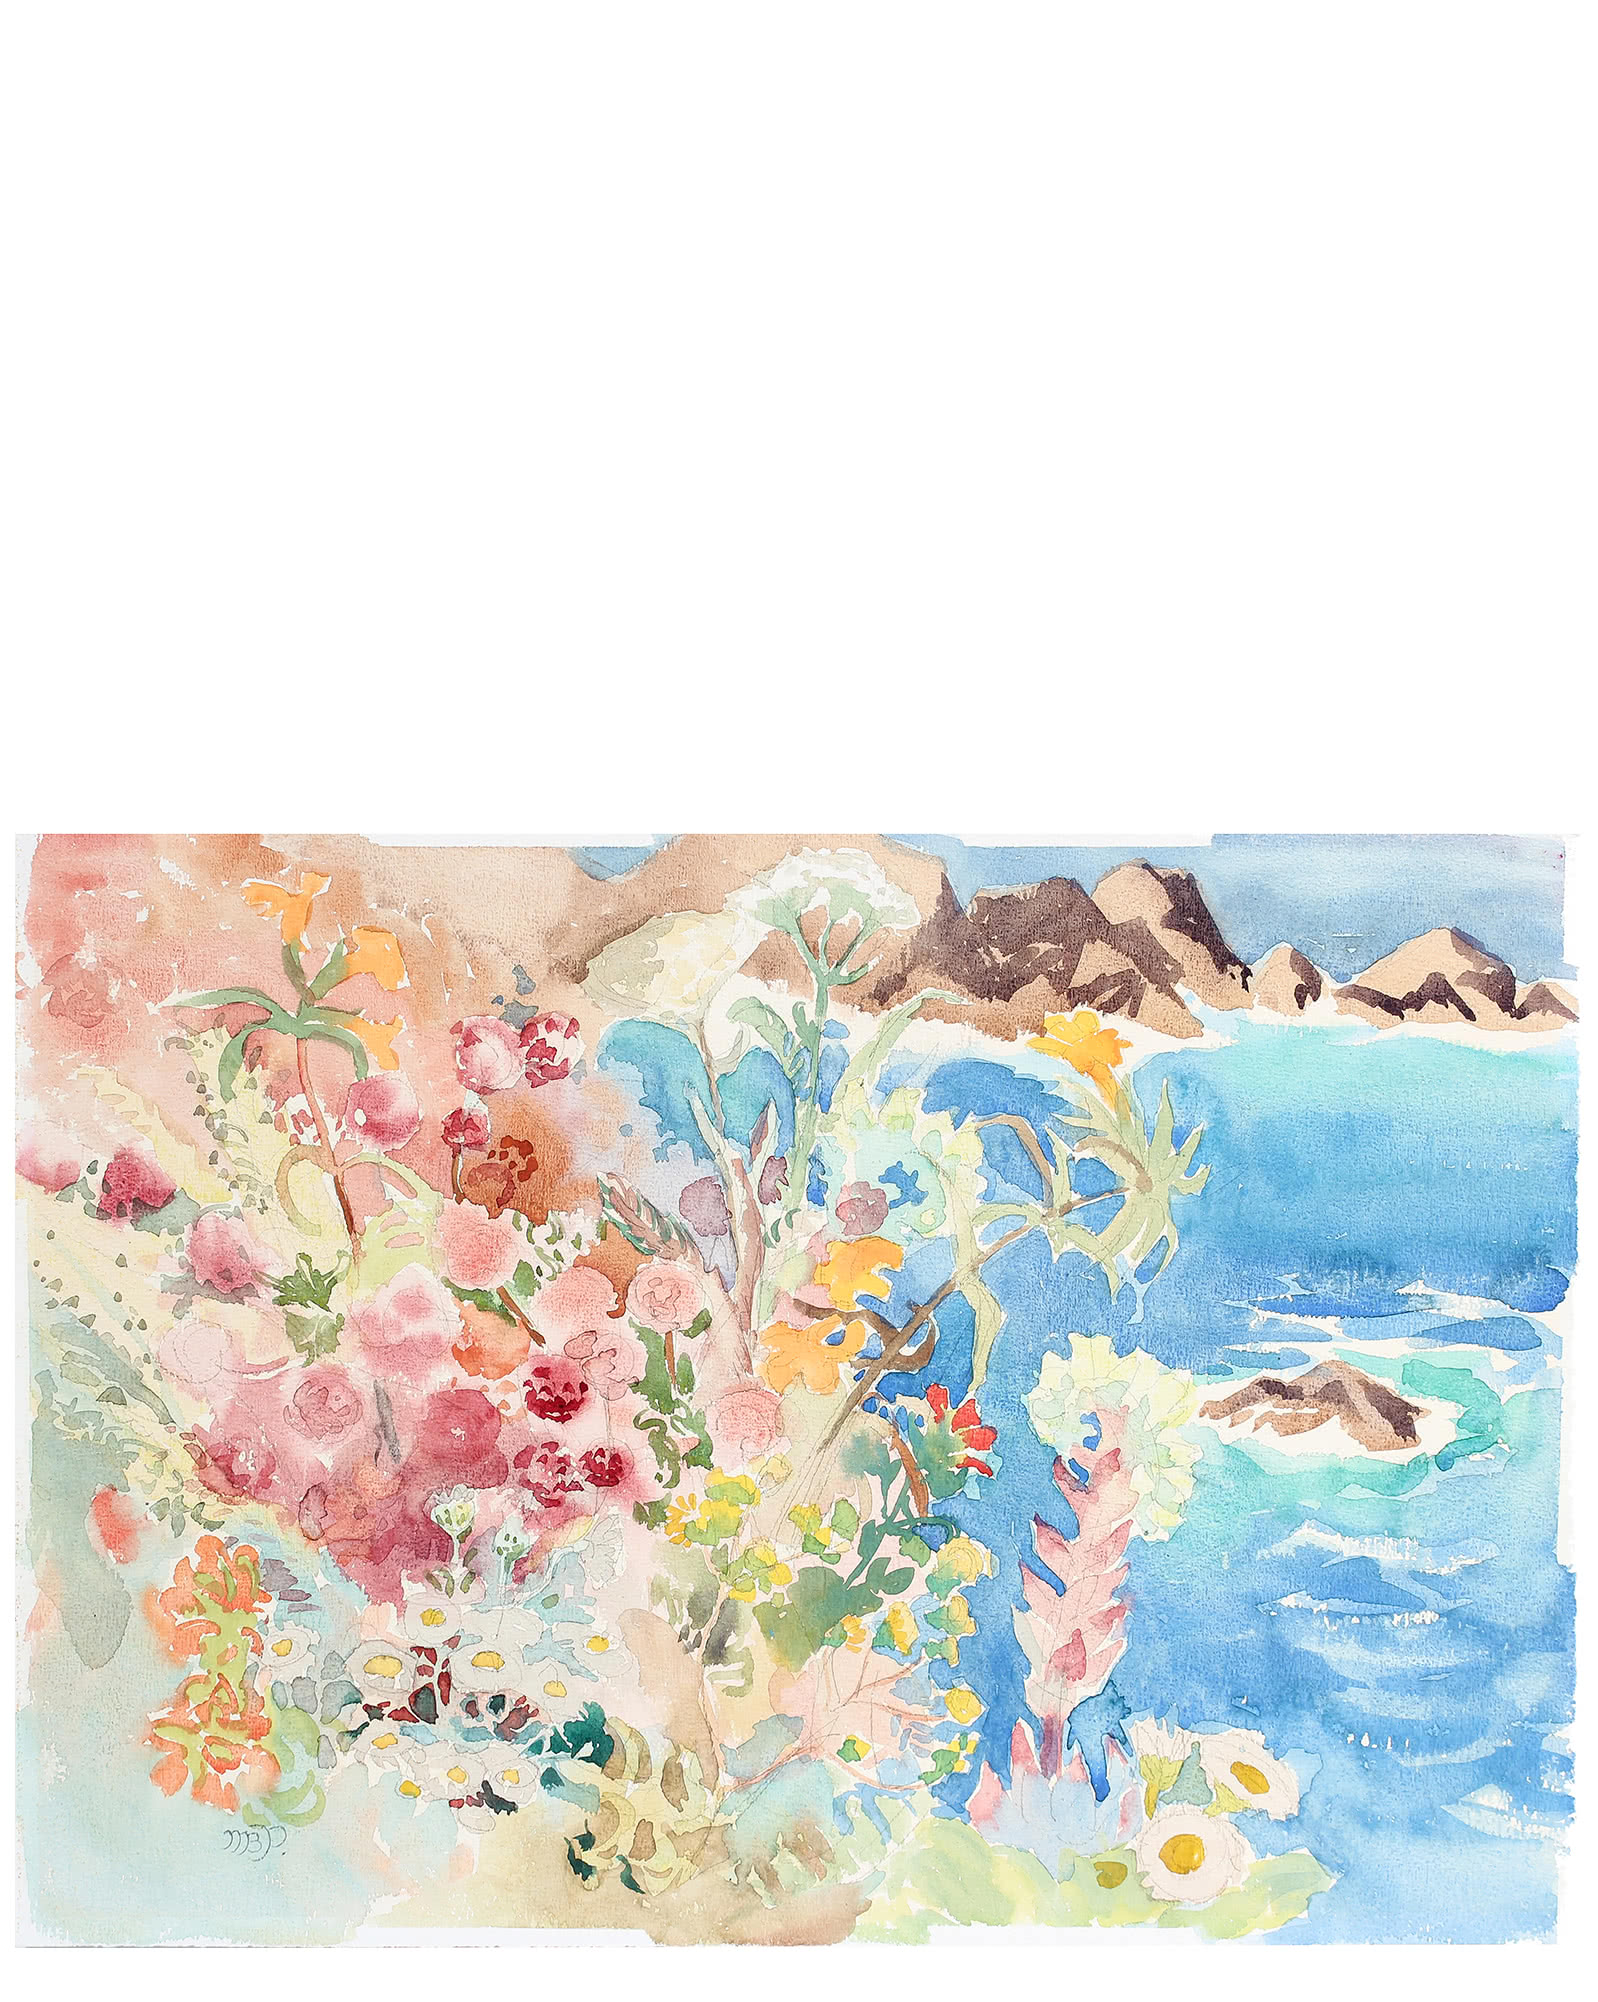 """Costal Bloom"" by Mary Pomeroy,"